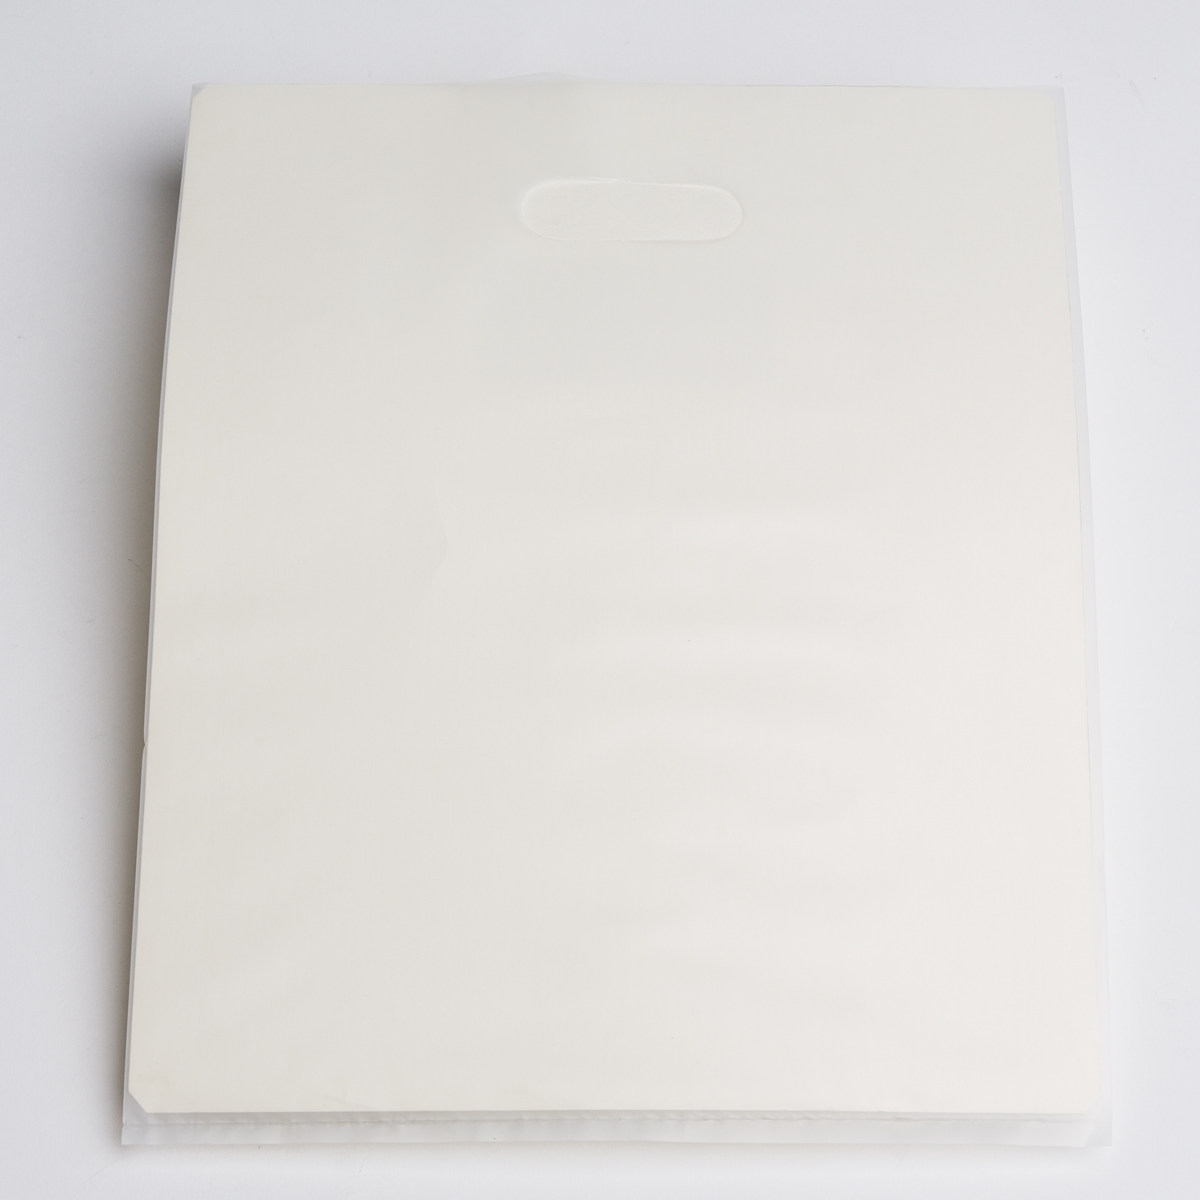 Flat Clear Plastic Shopping Bag - Medium | A&B Store Fixtures